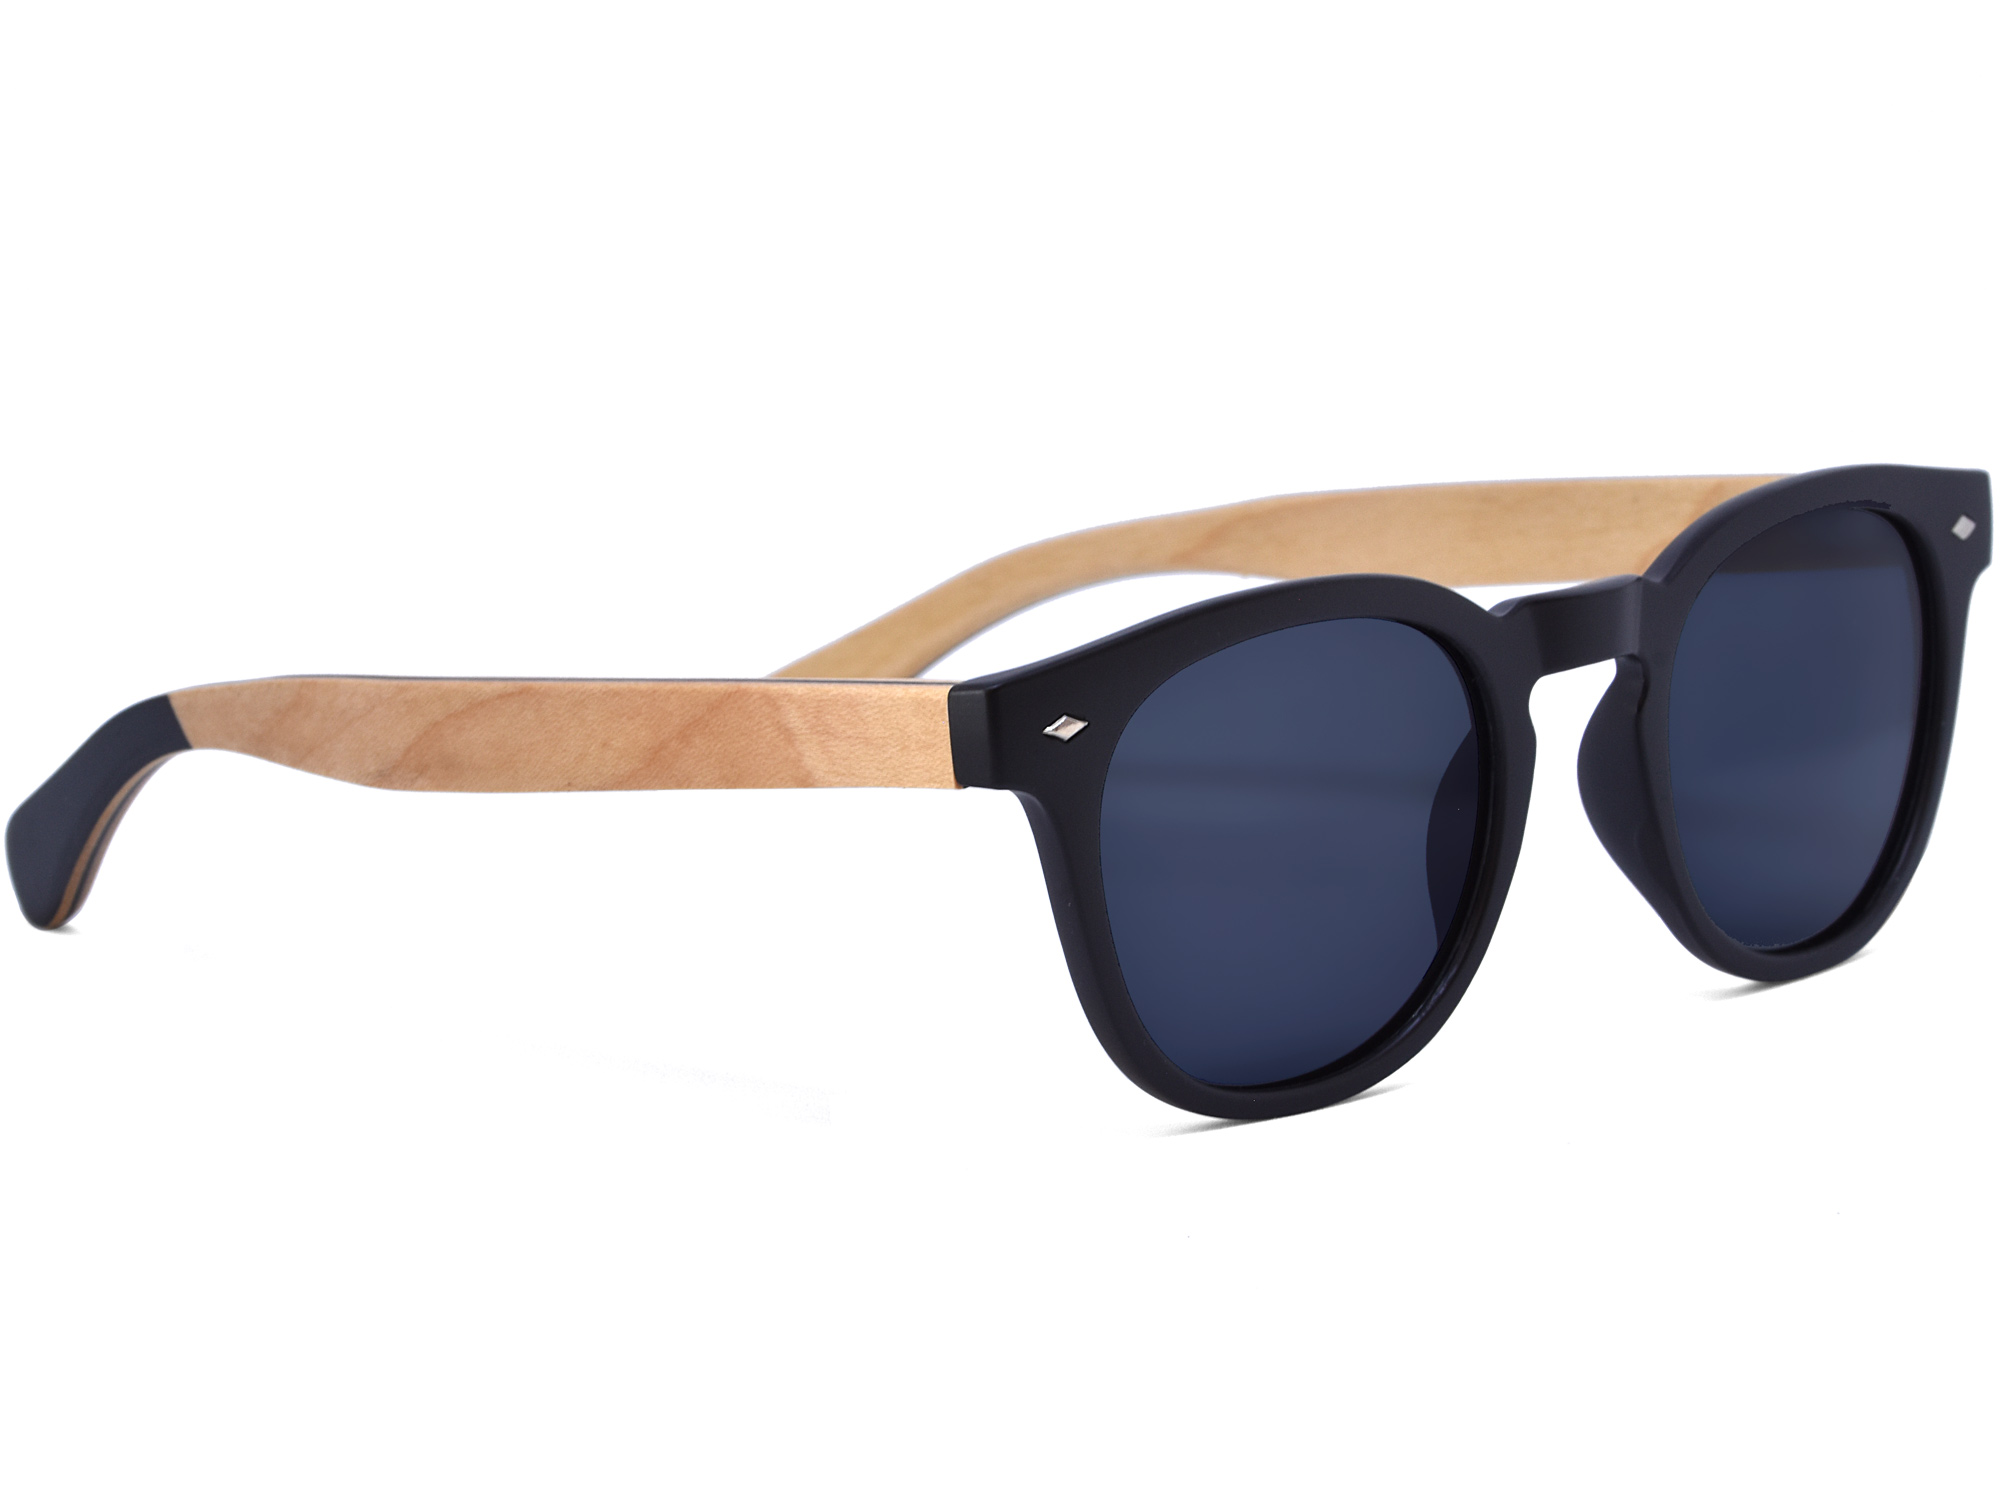 Round maple wood sunglasses right